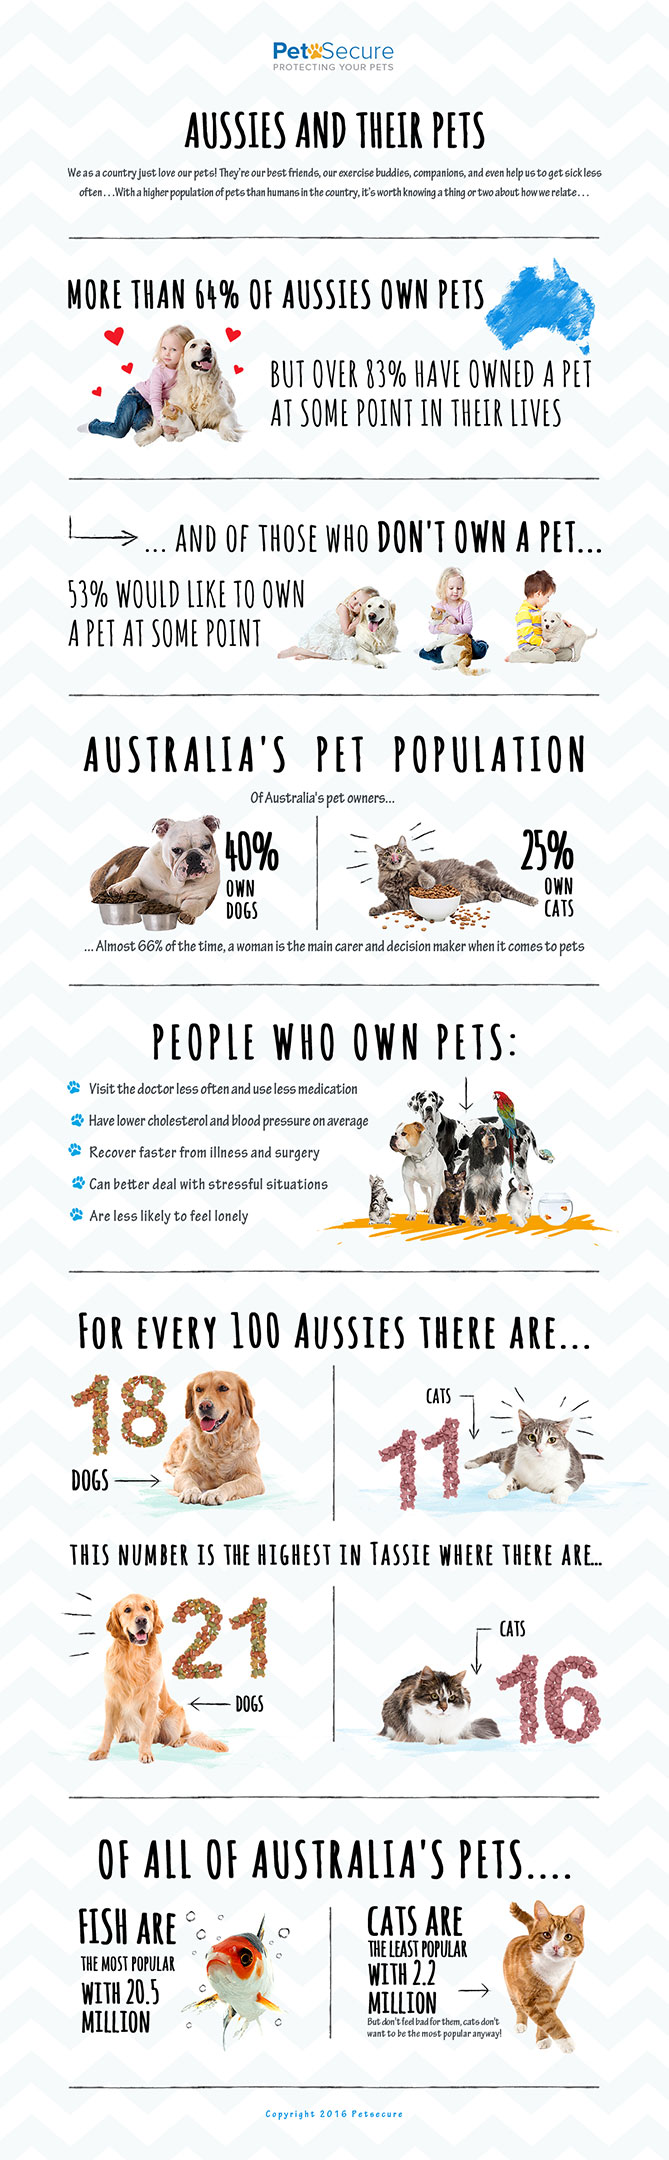 Fun facts about Aussies and their pets